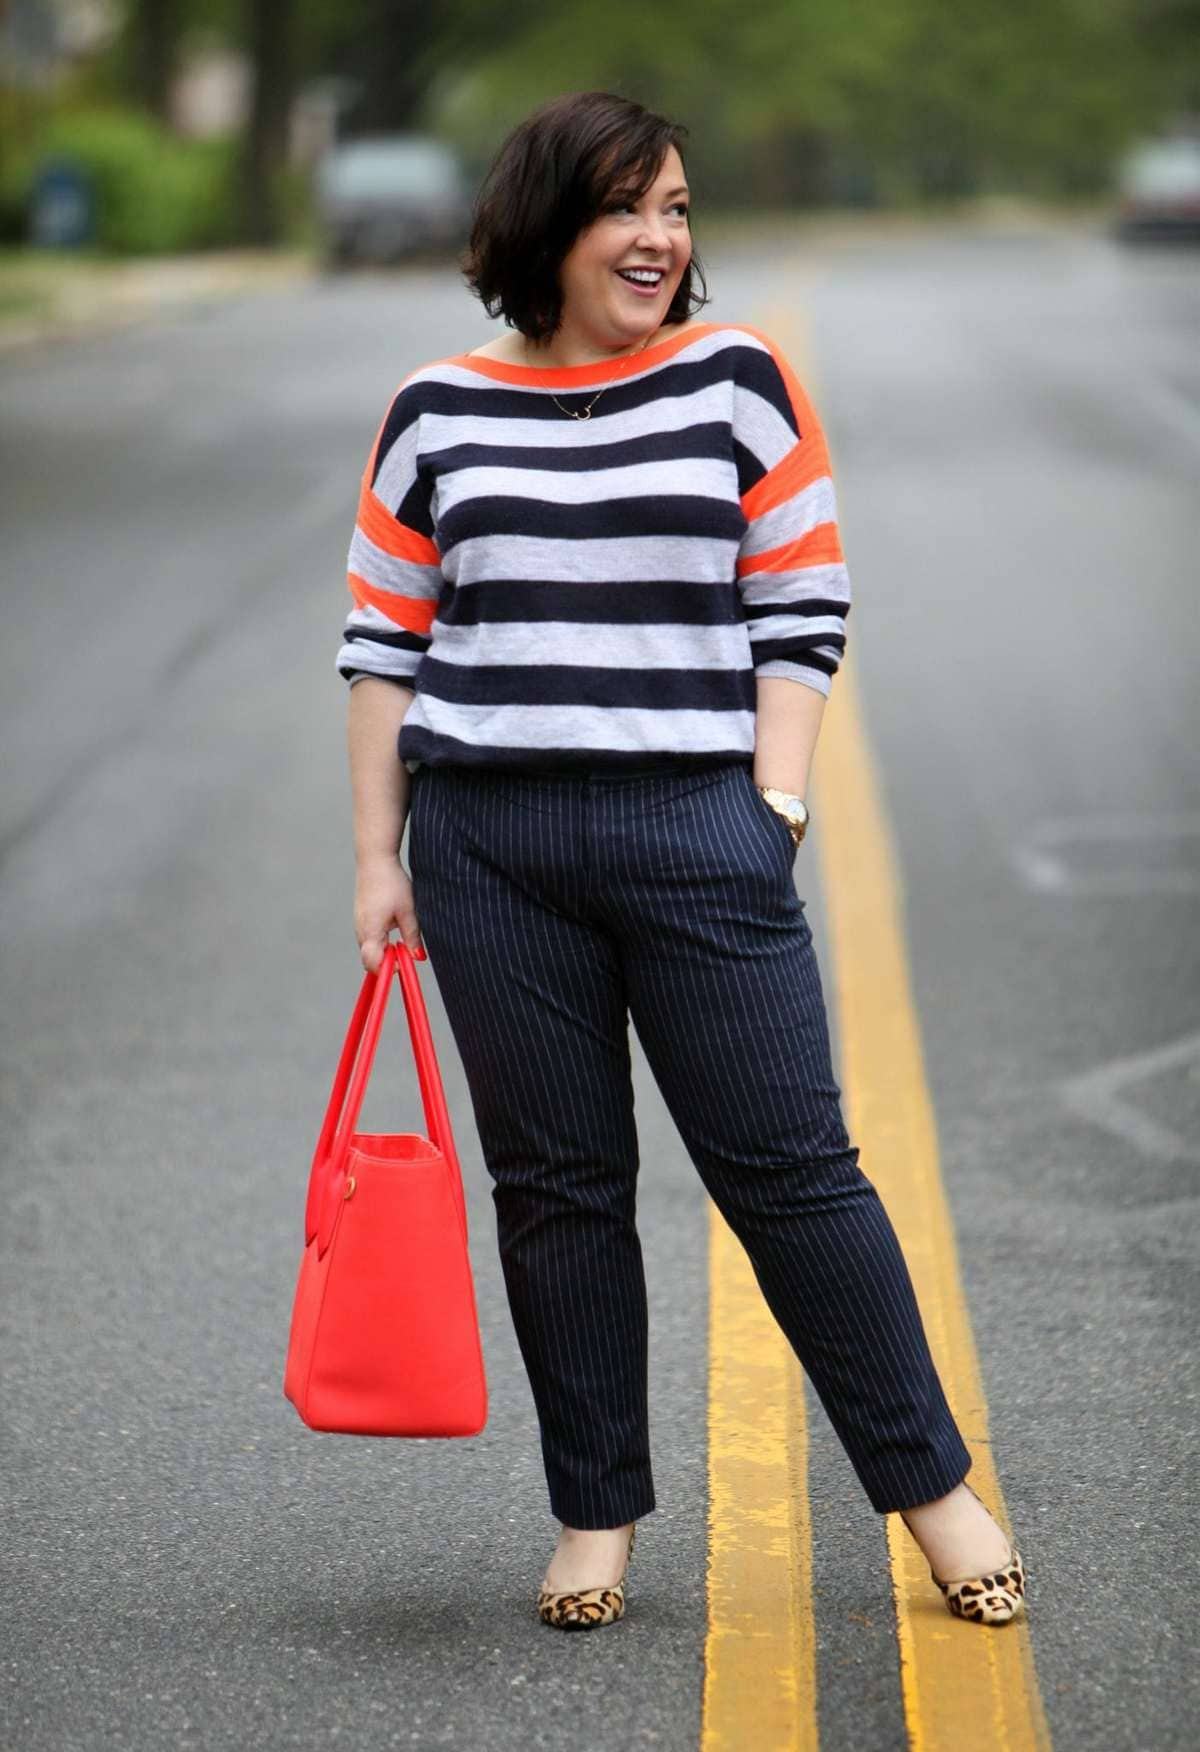 """Wardrobe Oxygen, over 40 curvy fashion blogger featuring a J. Crew cashmere sweater, Banana Republic pants, and a Dagne Dover 15"""" tote"""